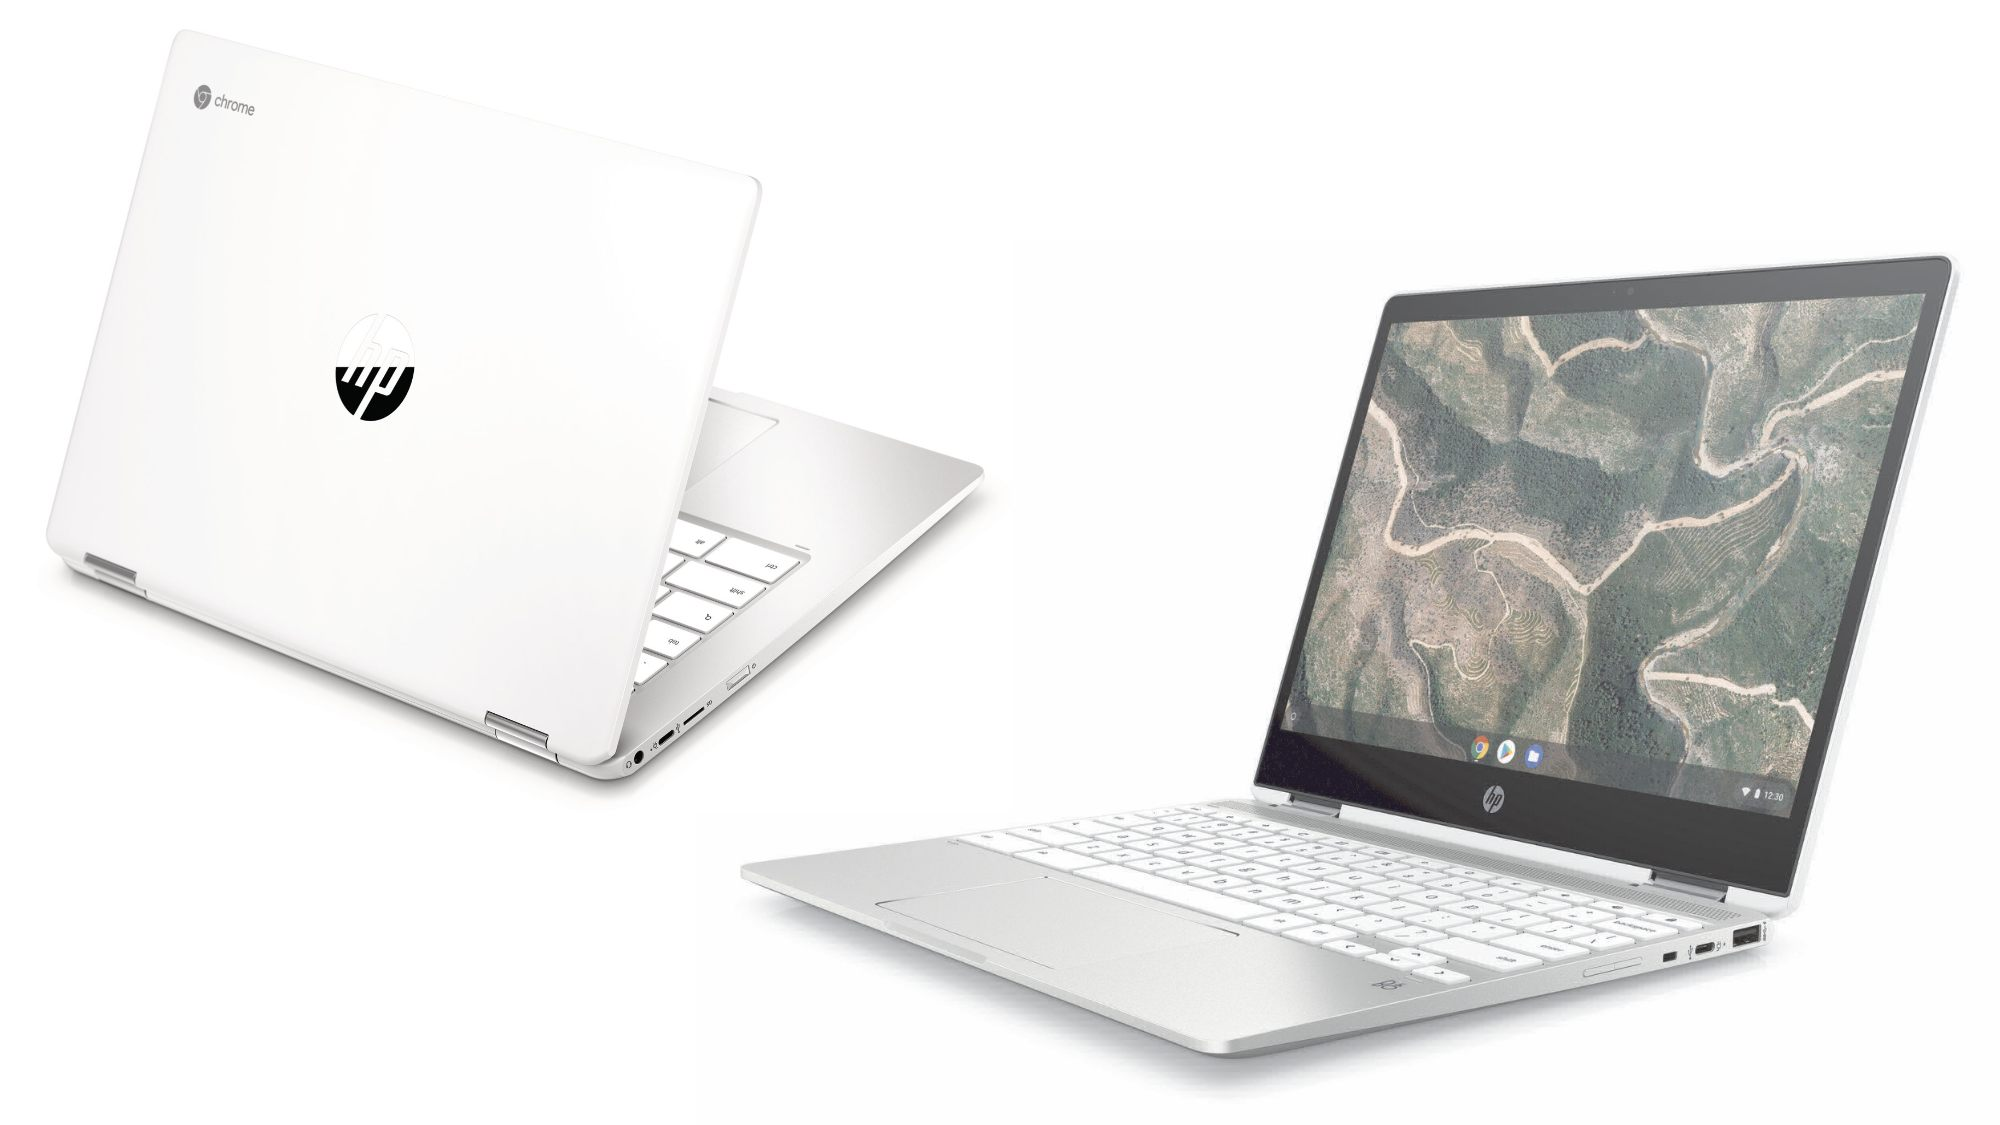 HP's other USI-capable Chromebook is now available